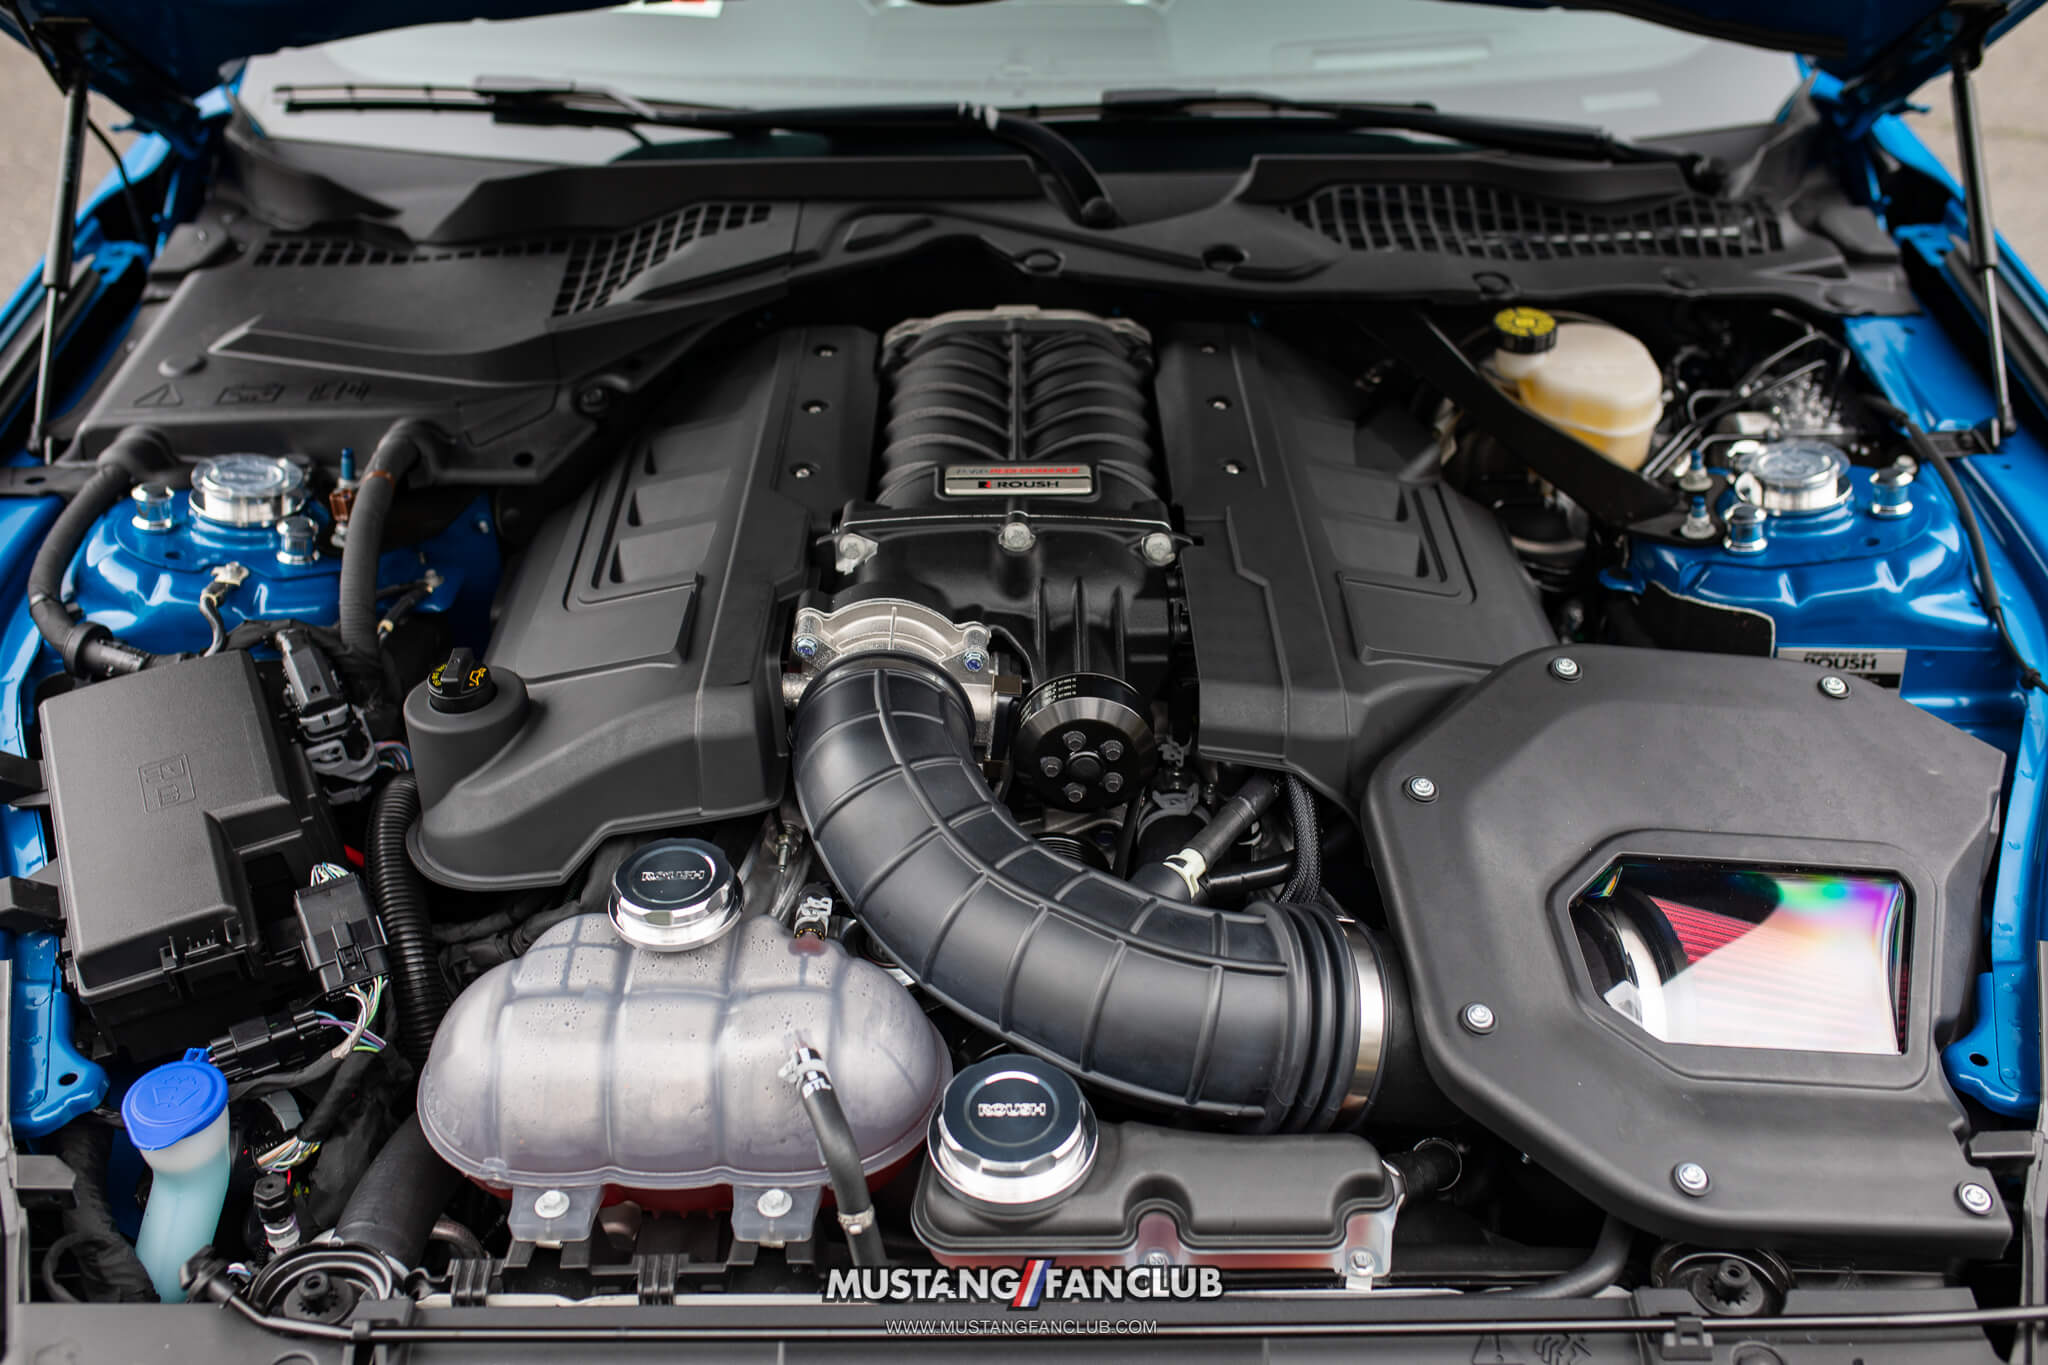 750hp Phase 2 ROUSH Supercharger